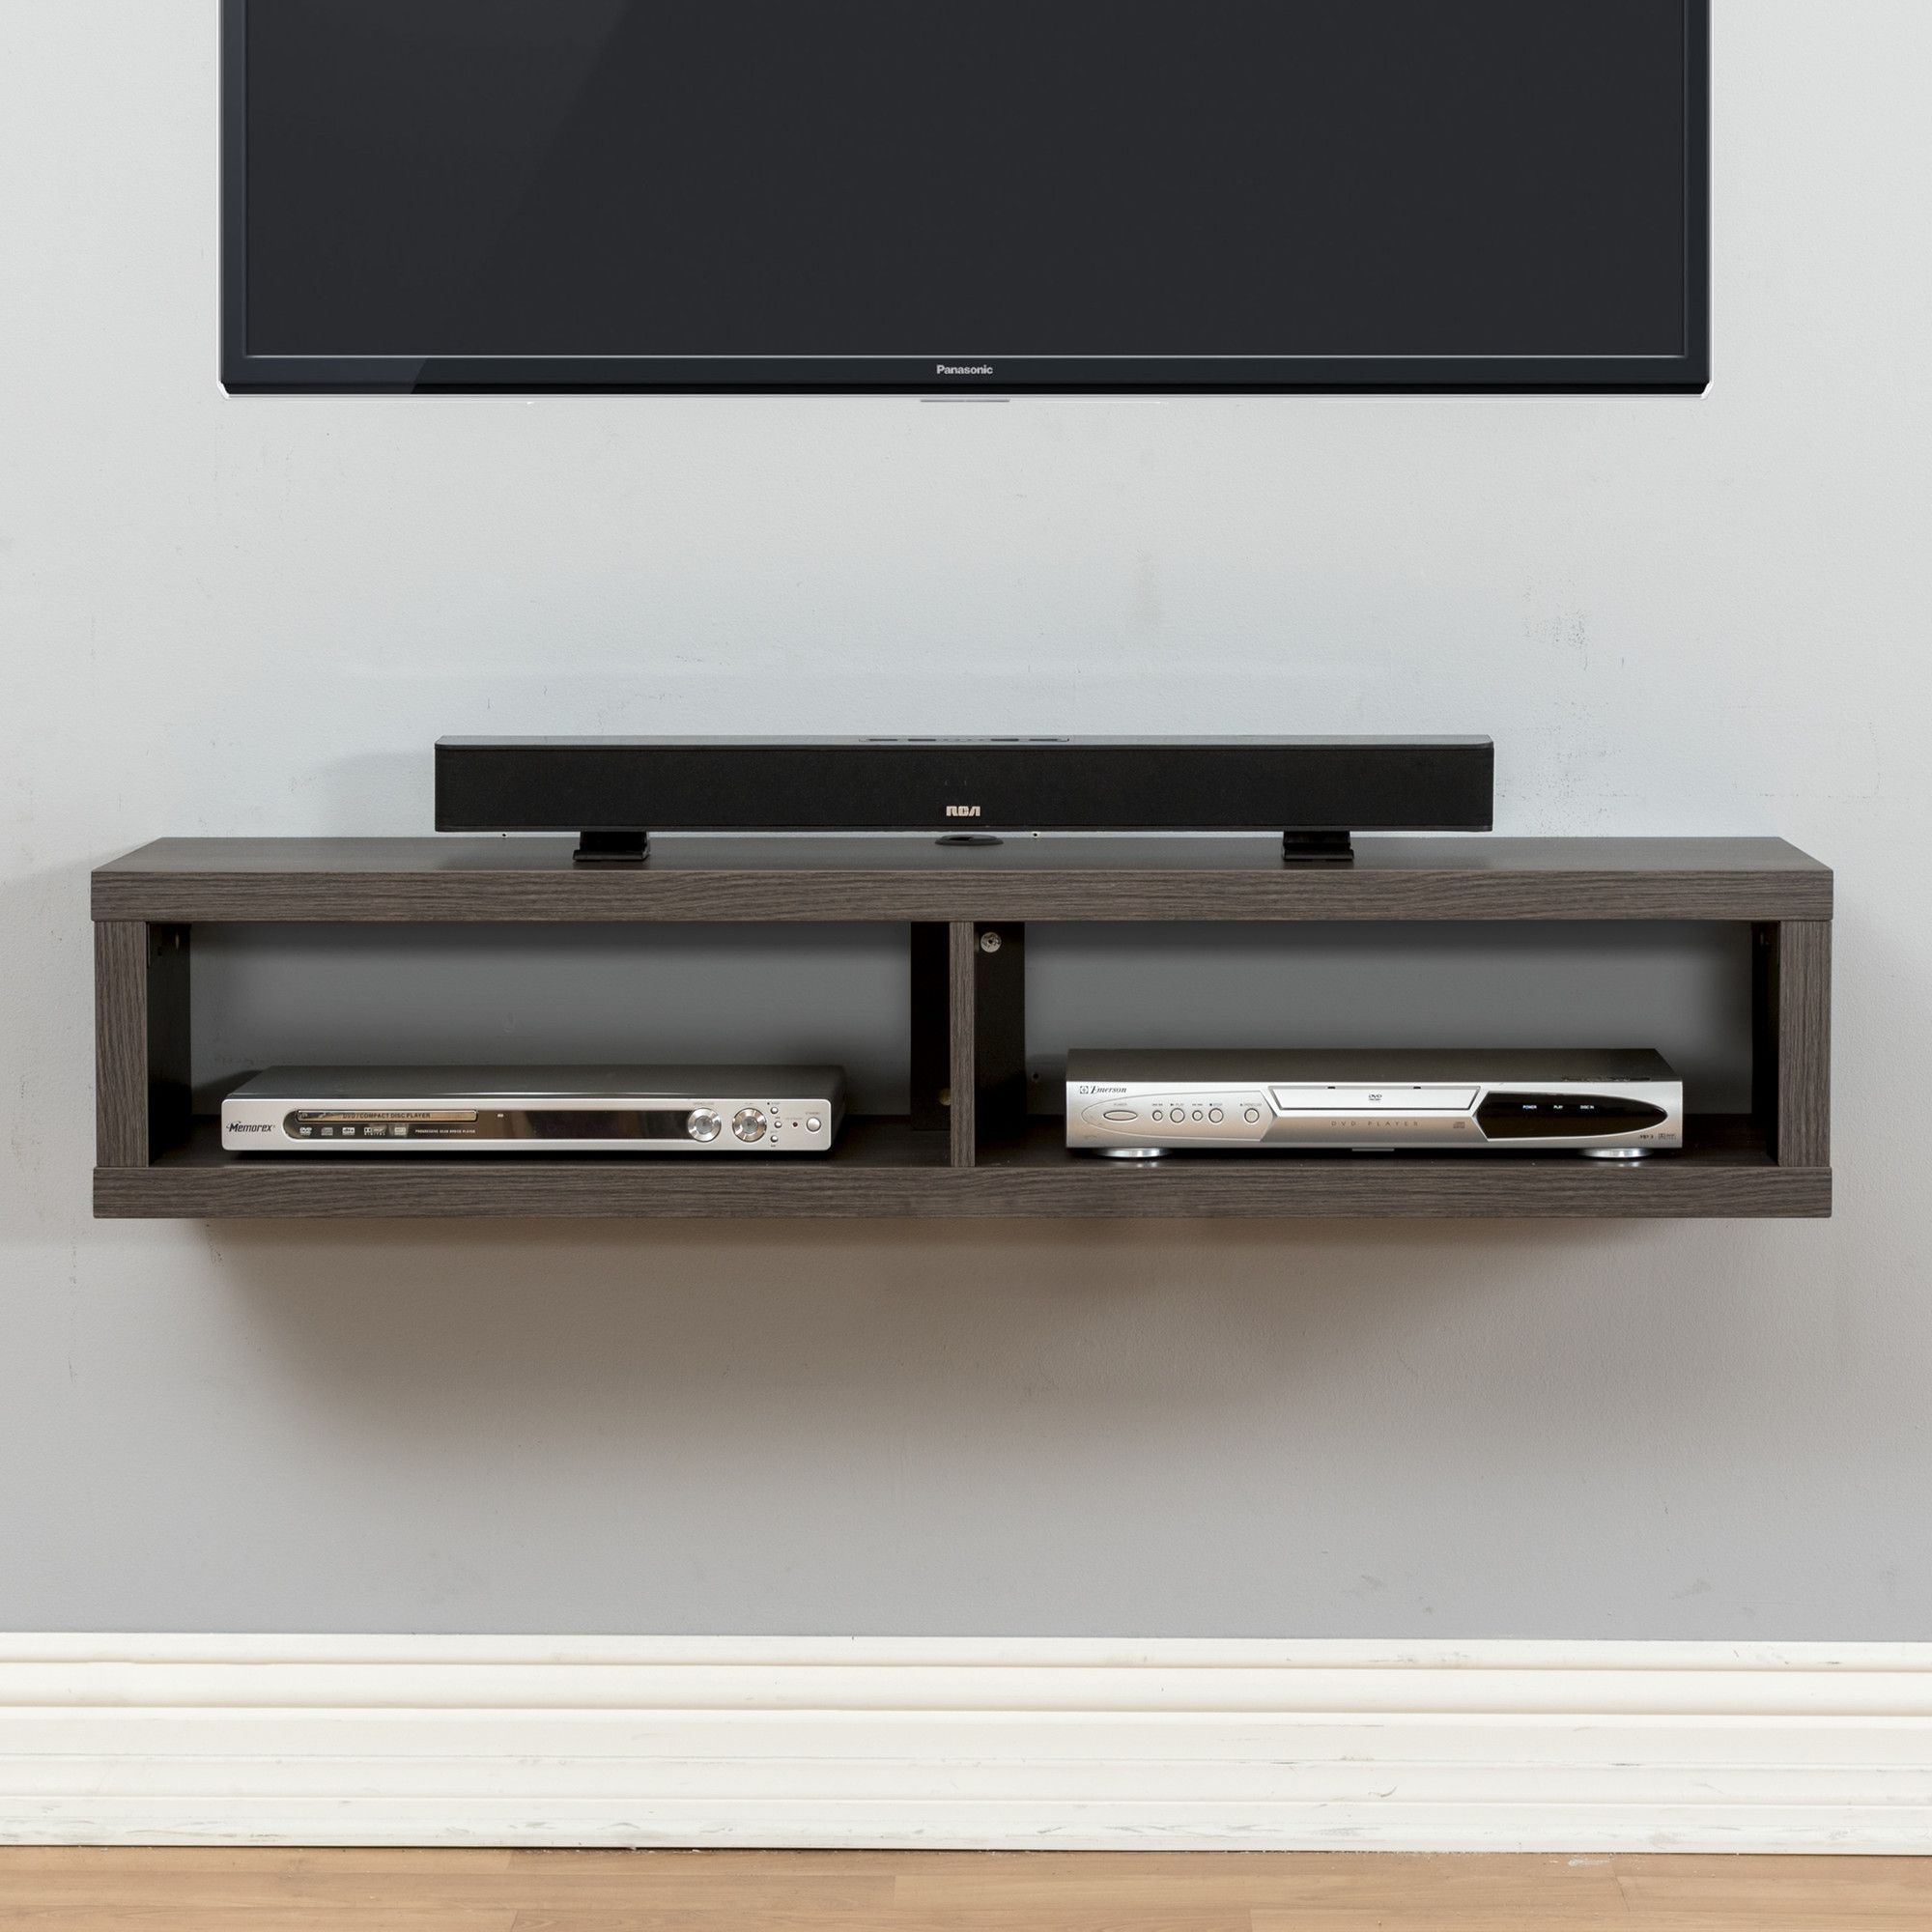 "48"" Shallow Wall Mounted TV ponent Shelf"